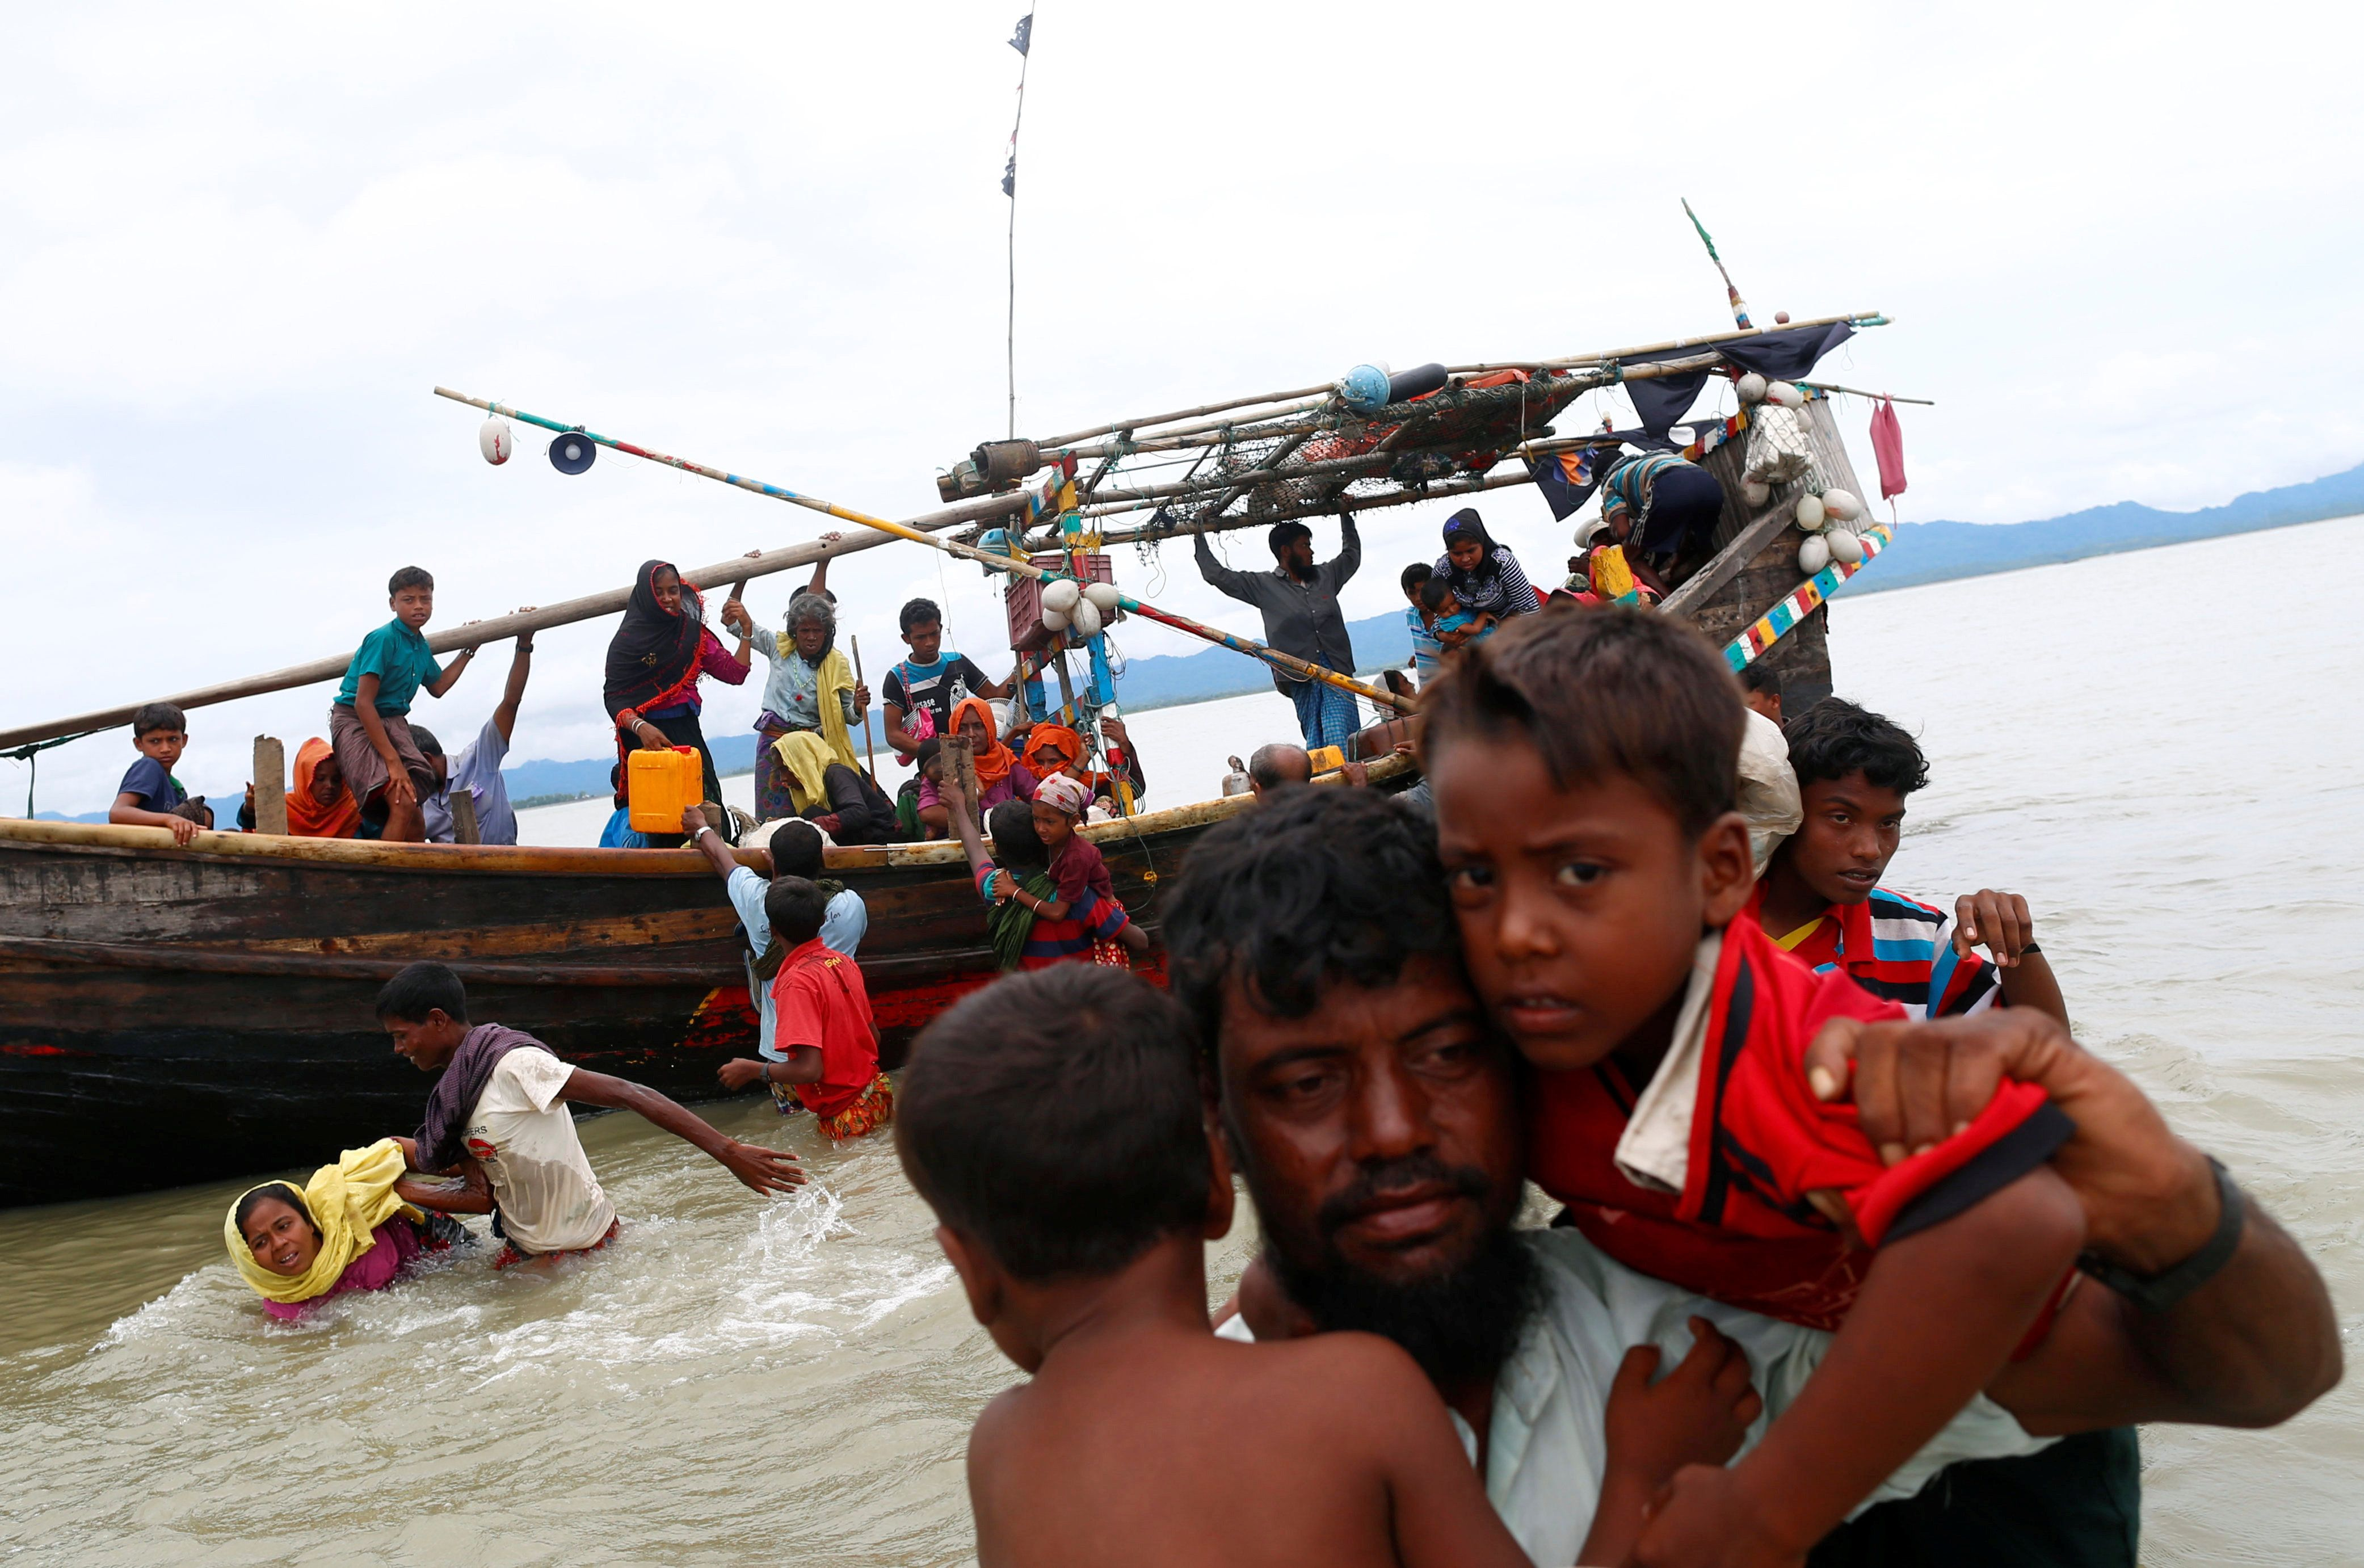 Rohingya refugees walk to the shore after crossing the Bangladesh-Myanmar border by boat through the Bay of Bengal in Shah Porir Dwip, Bangladesh, September 10, 2017. REUTERS/Danish Siddiqui